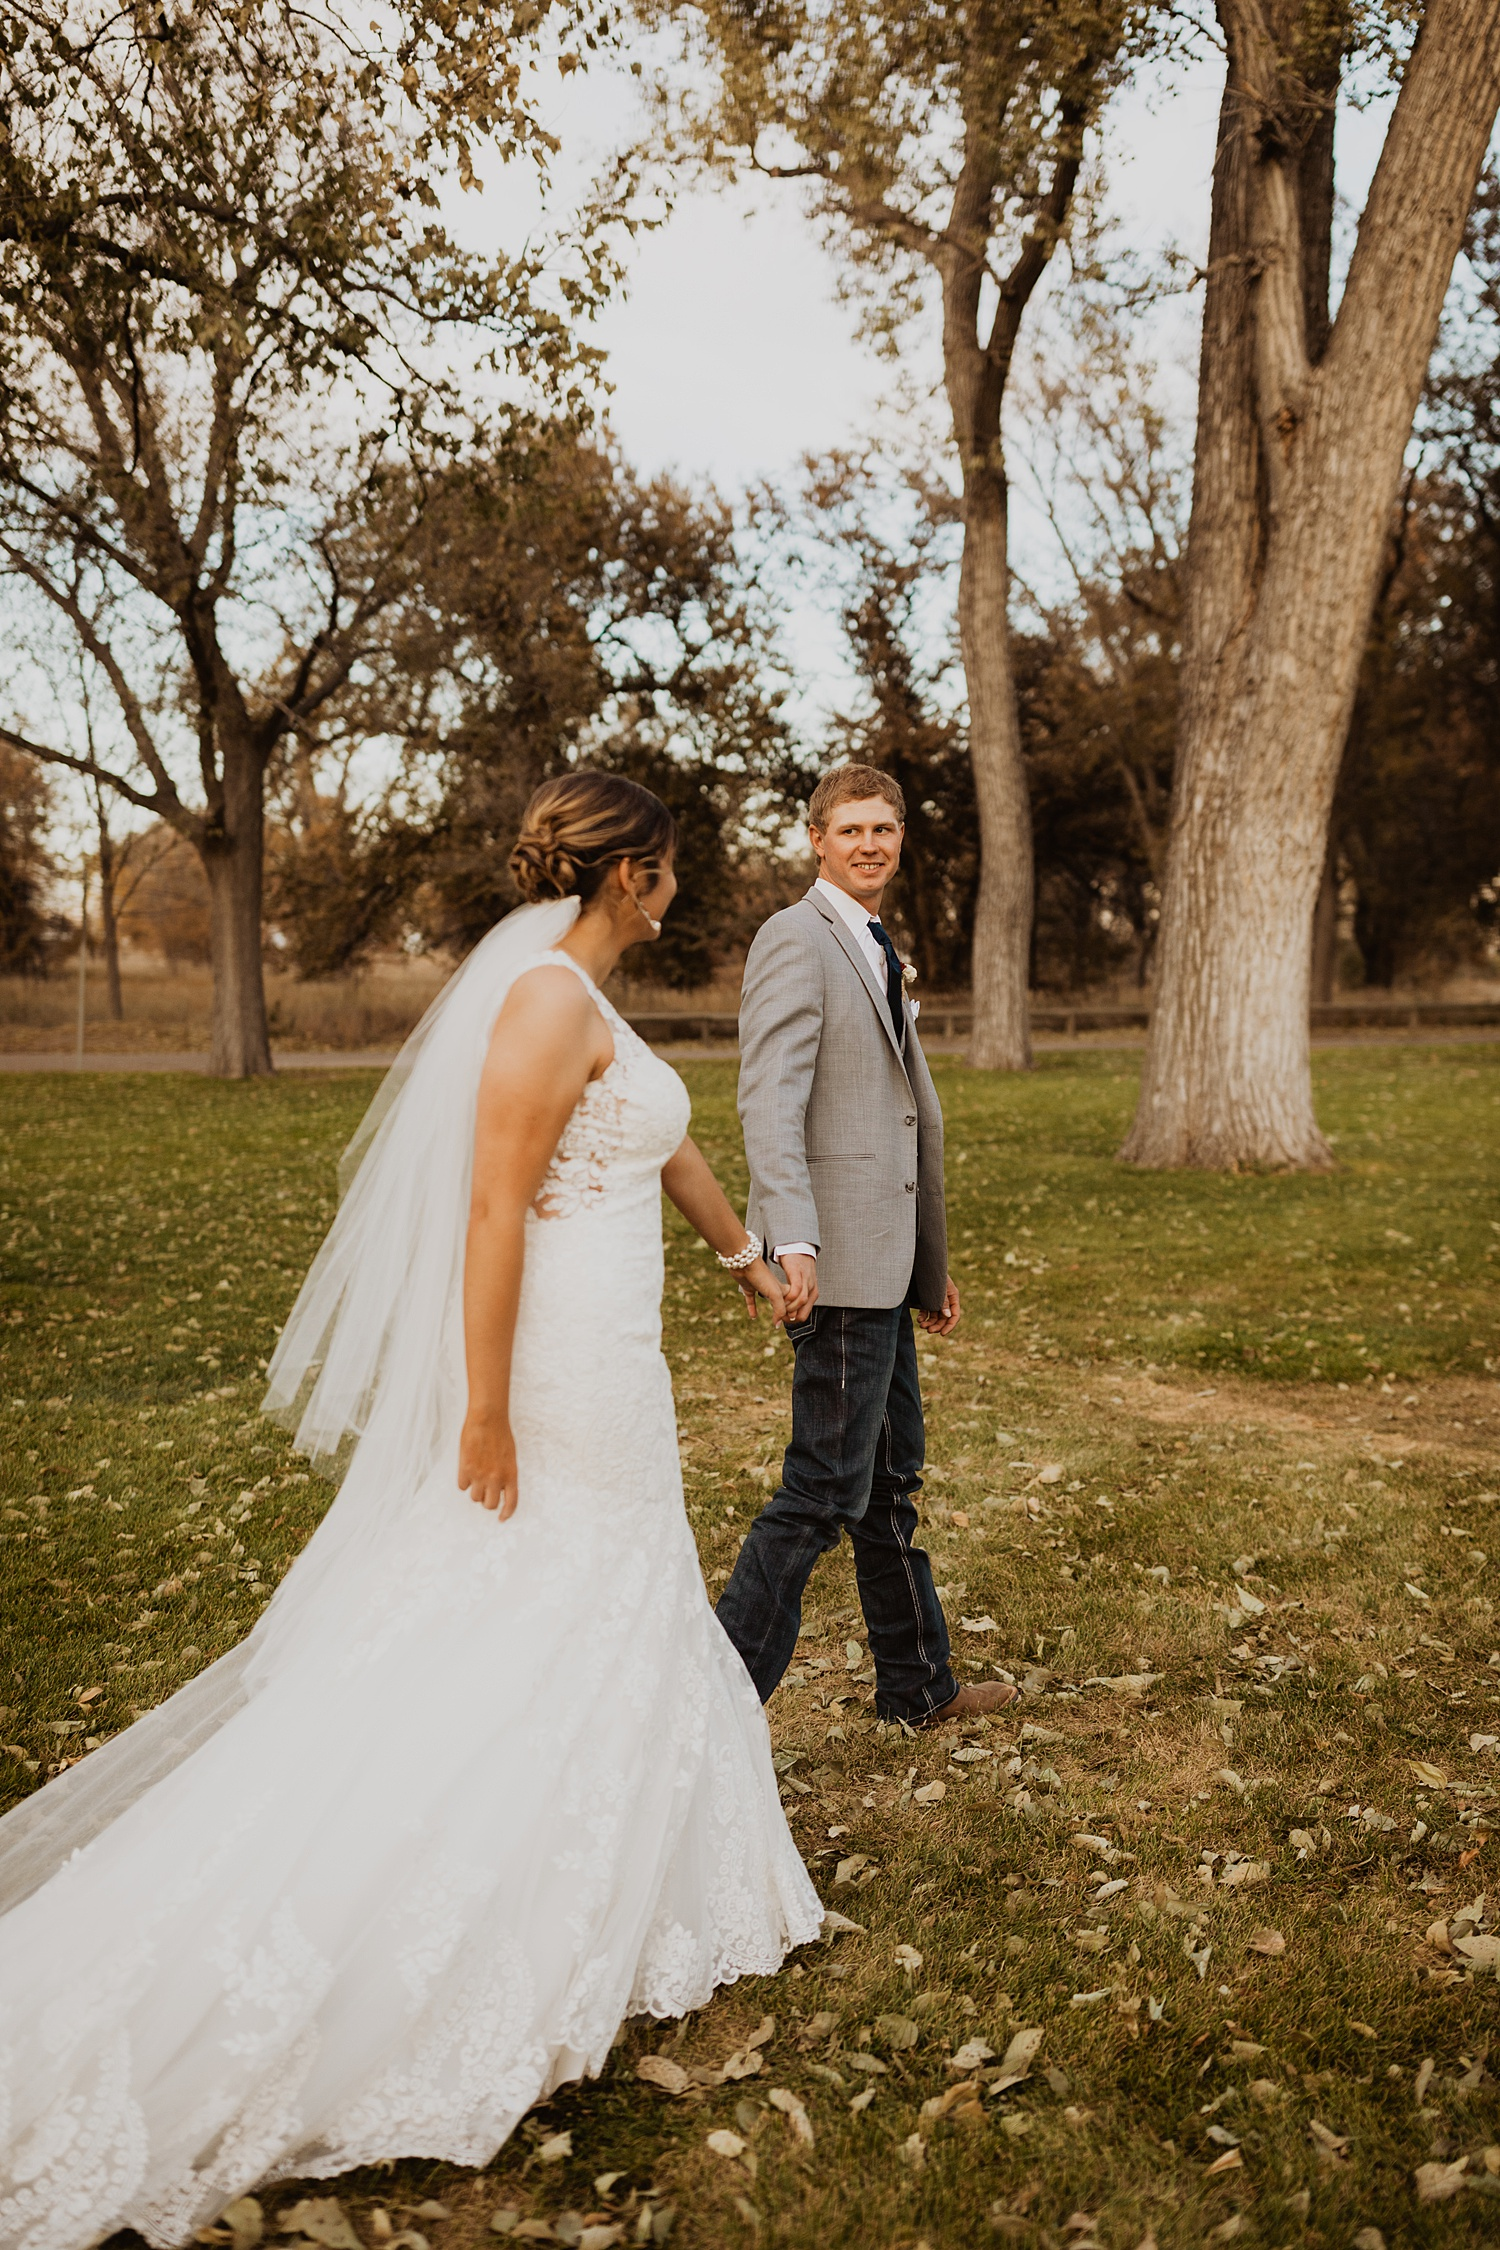 Bride and Groom Portraits | Lace Bridal Gown | Fall Wedding Theme | Cassie Madden Photography